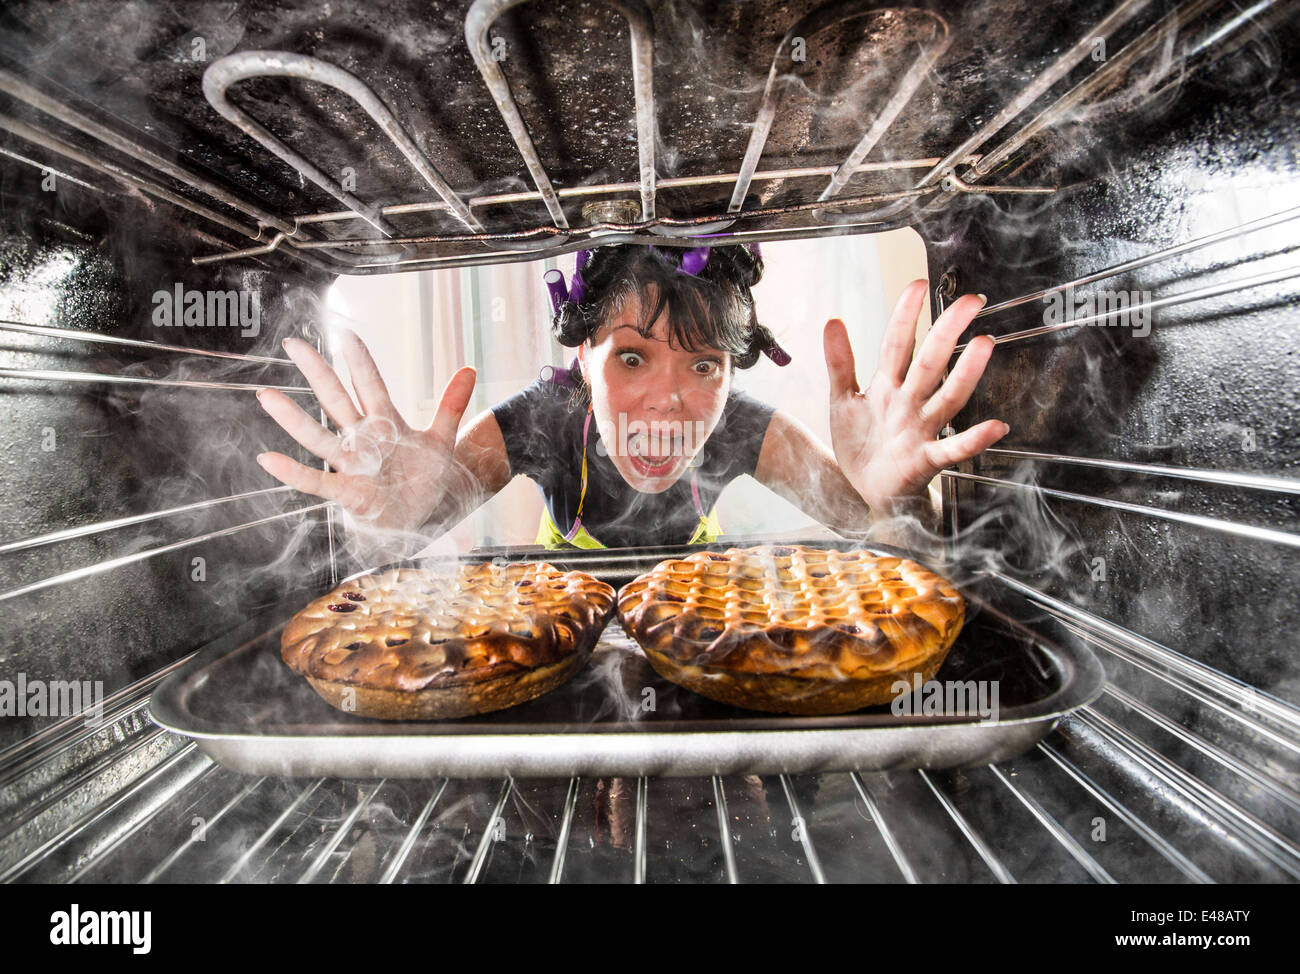 Housewife preparing cakes in the oven at home, view from the inside of the oven. Cooking in the oven. - Stock Image